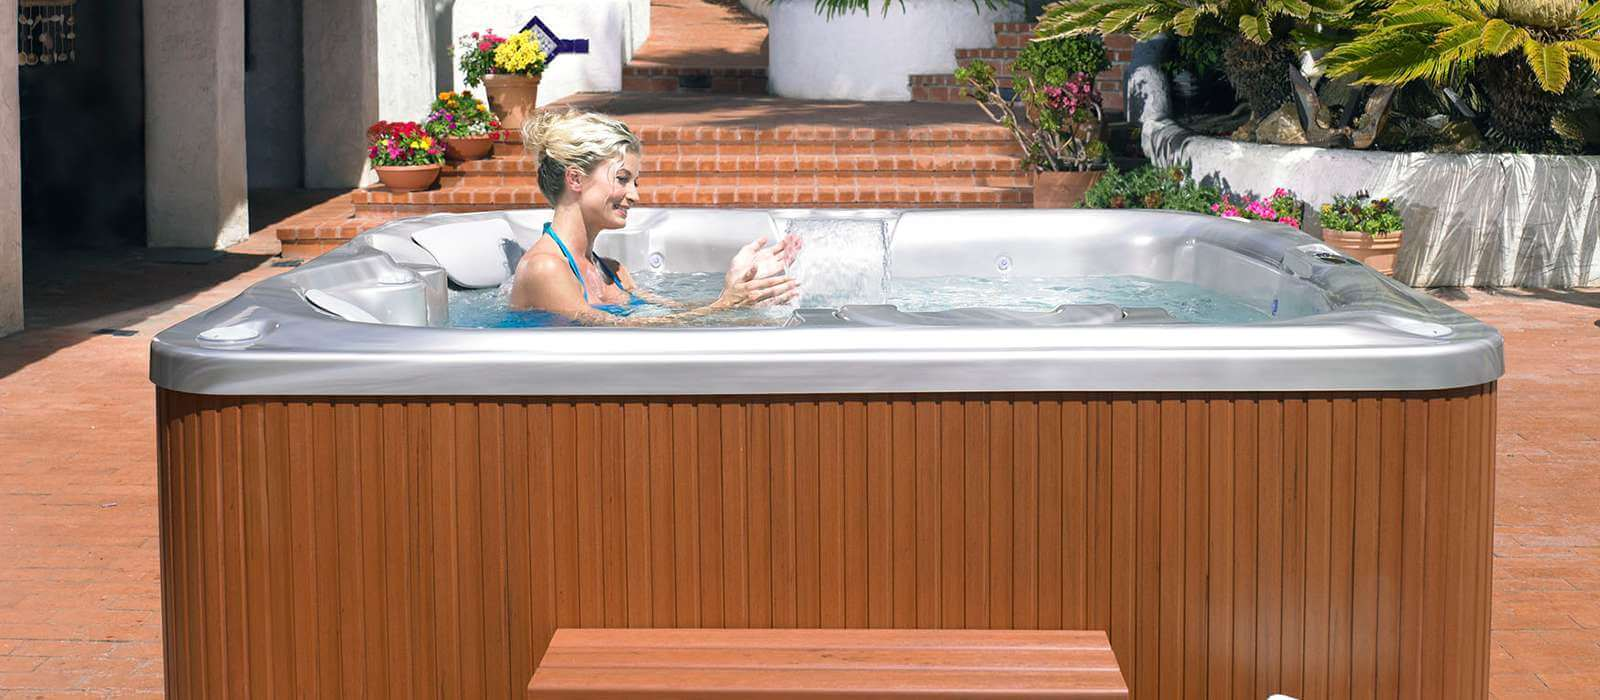 Glowing Review for the Limelight Hot Tub Glow Model